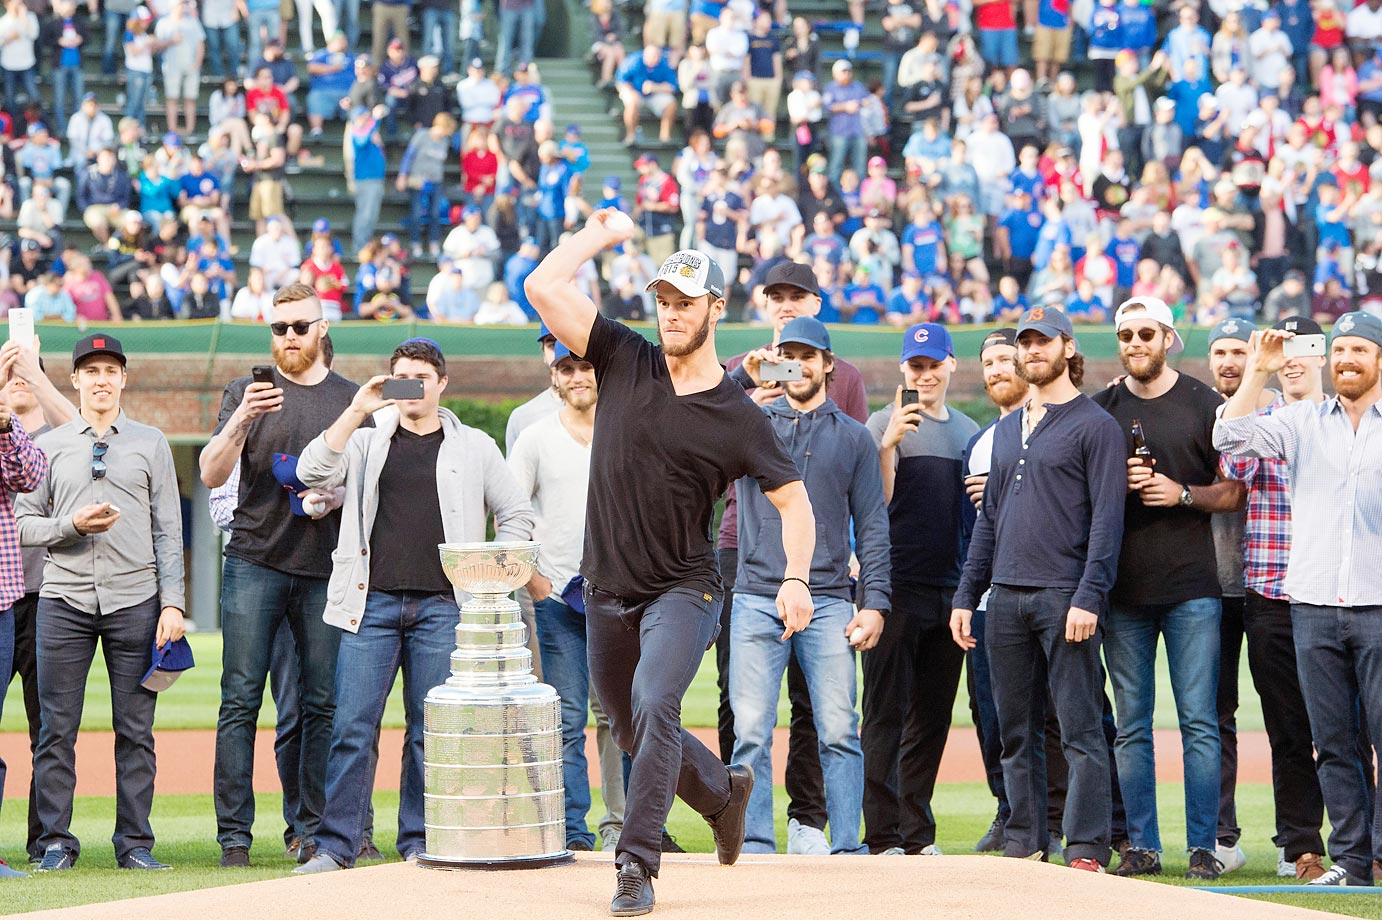 Jonathan Toews of the Stanley Cup champion Chicago Blackhawks throws out the ceremonial pitch at a game between the Cleveland Indians and the Chicago Cubs.